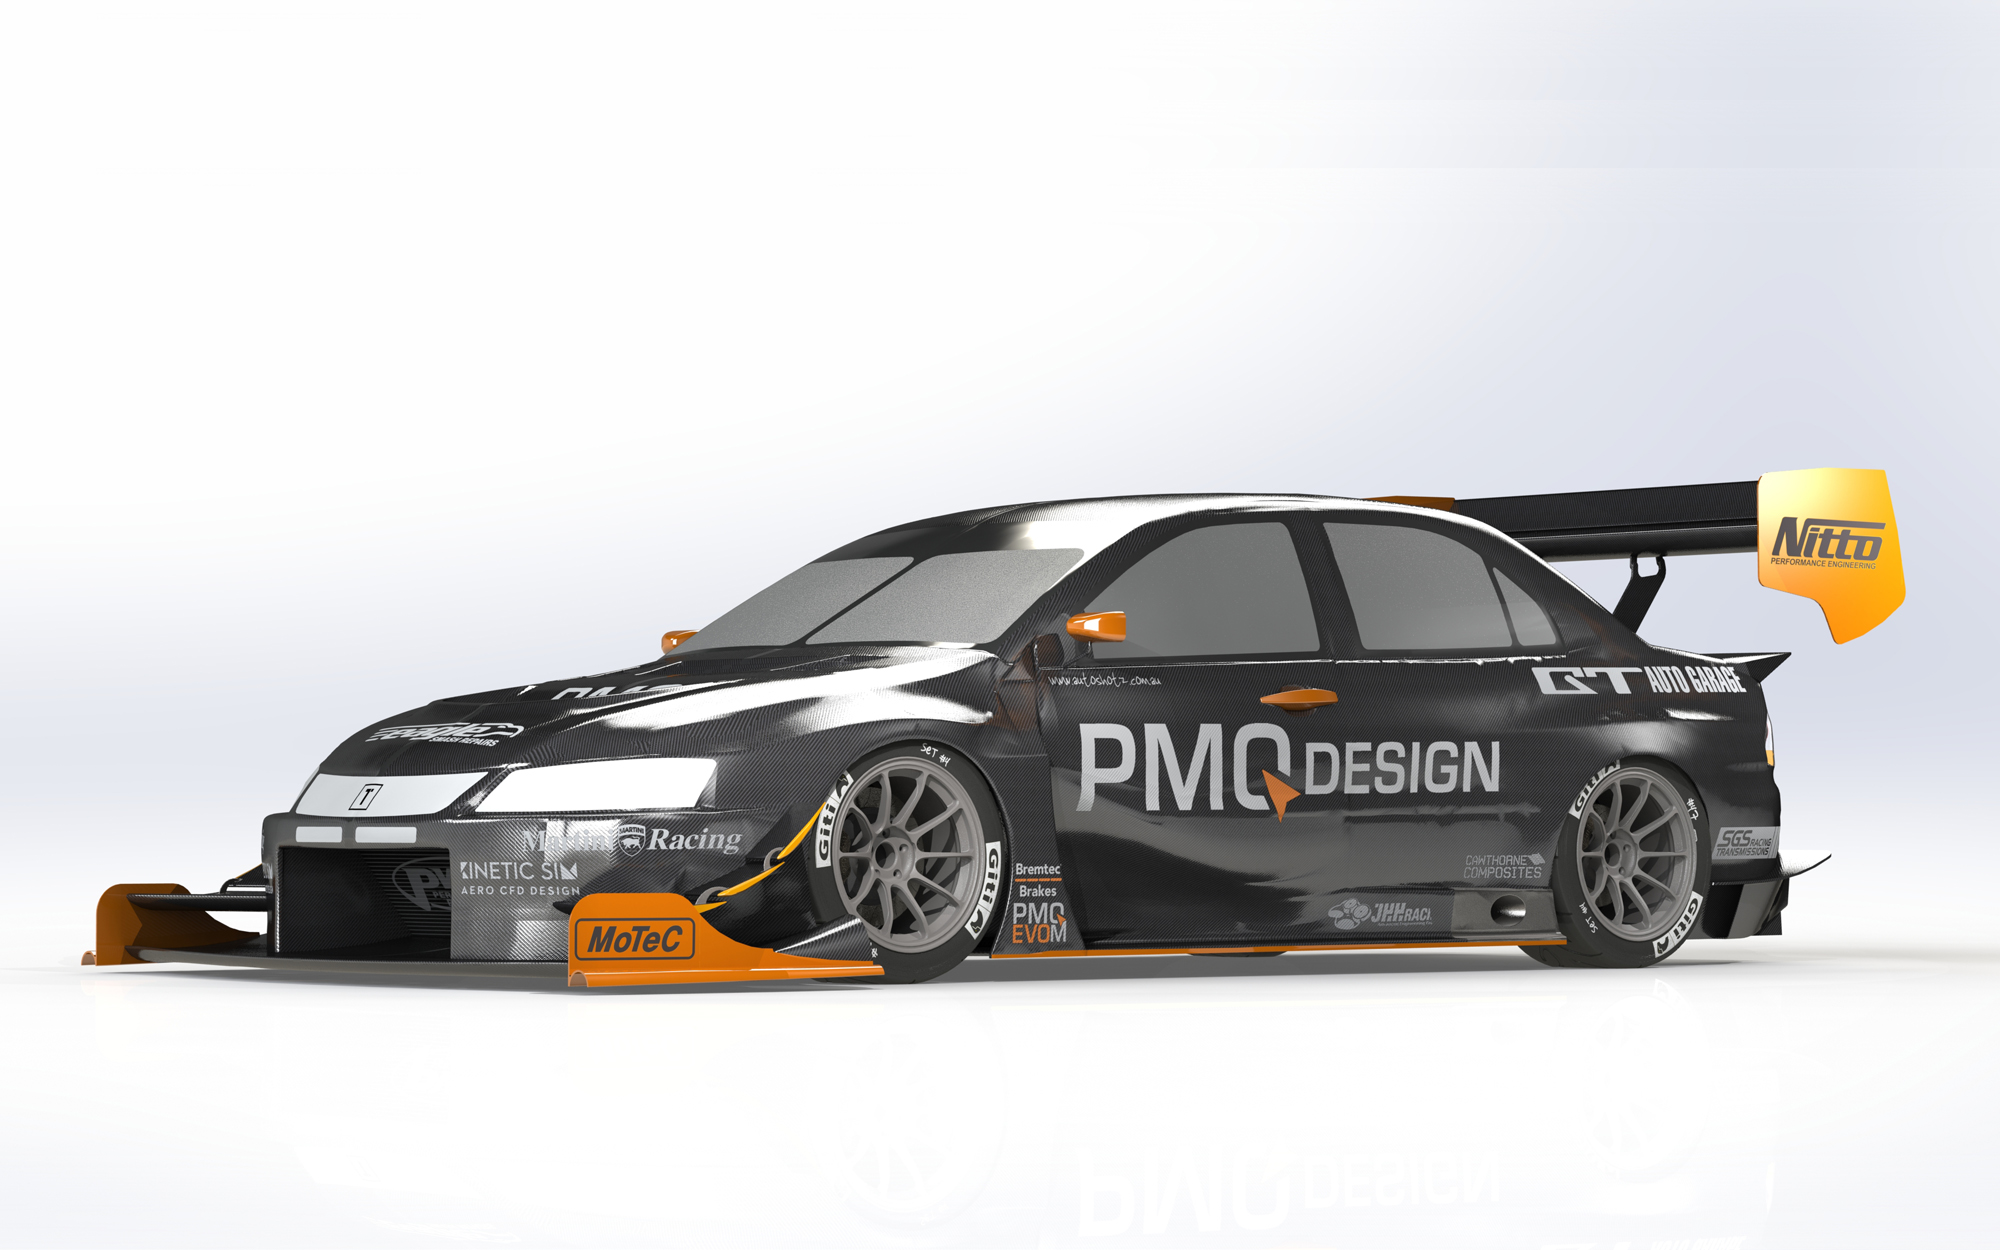 PMQ Design Evo M T1 Aero Upgrade